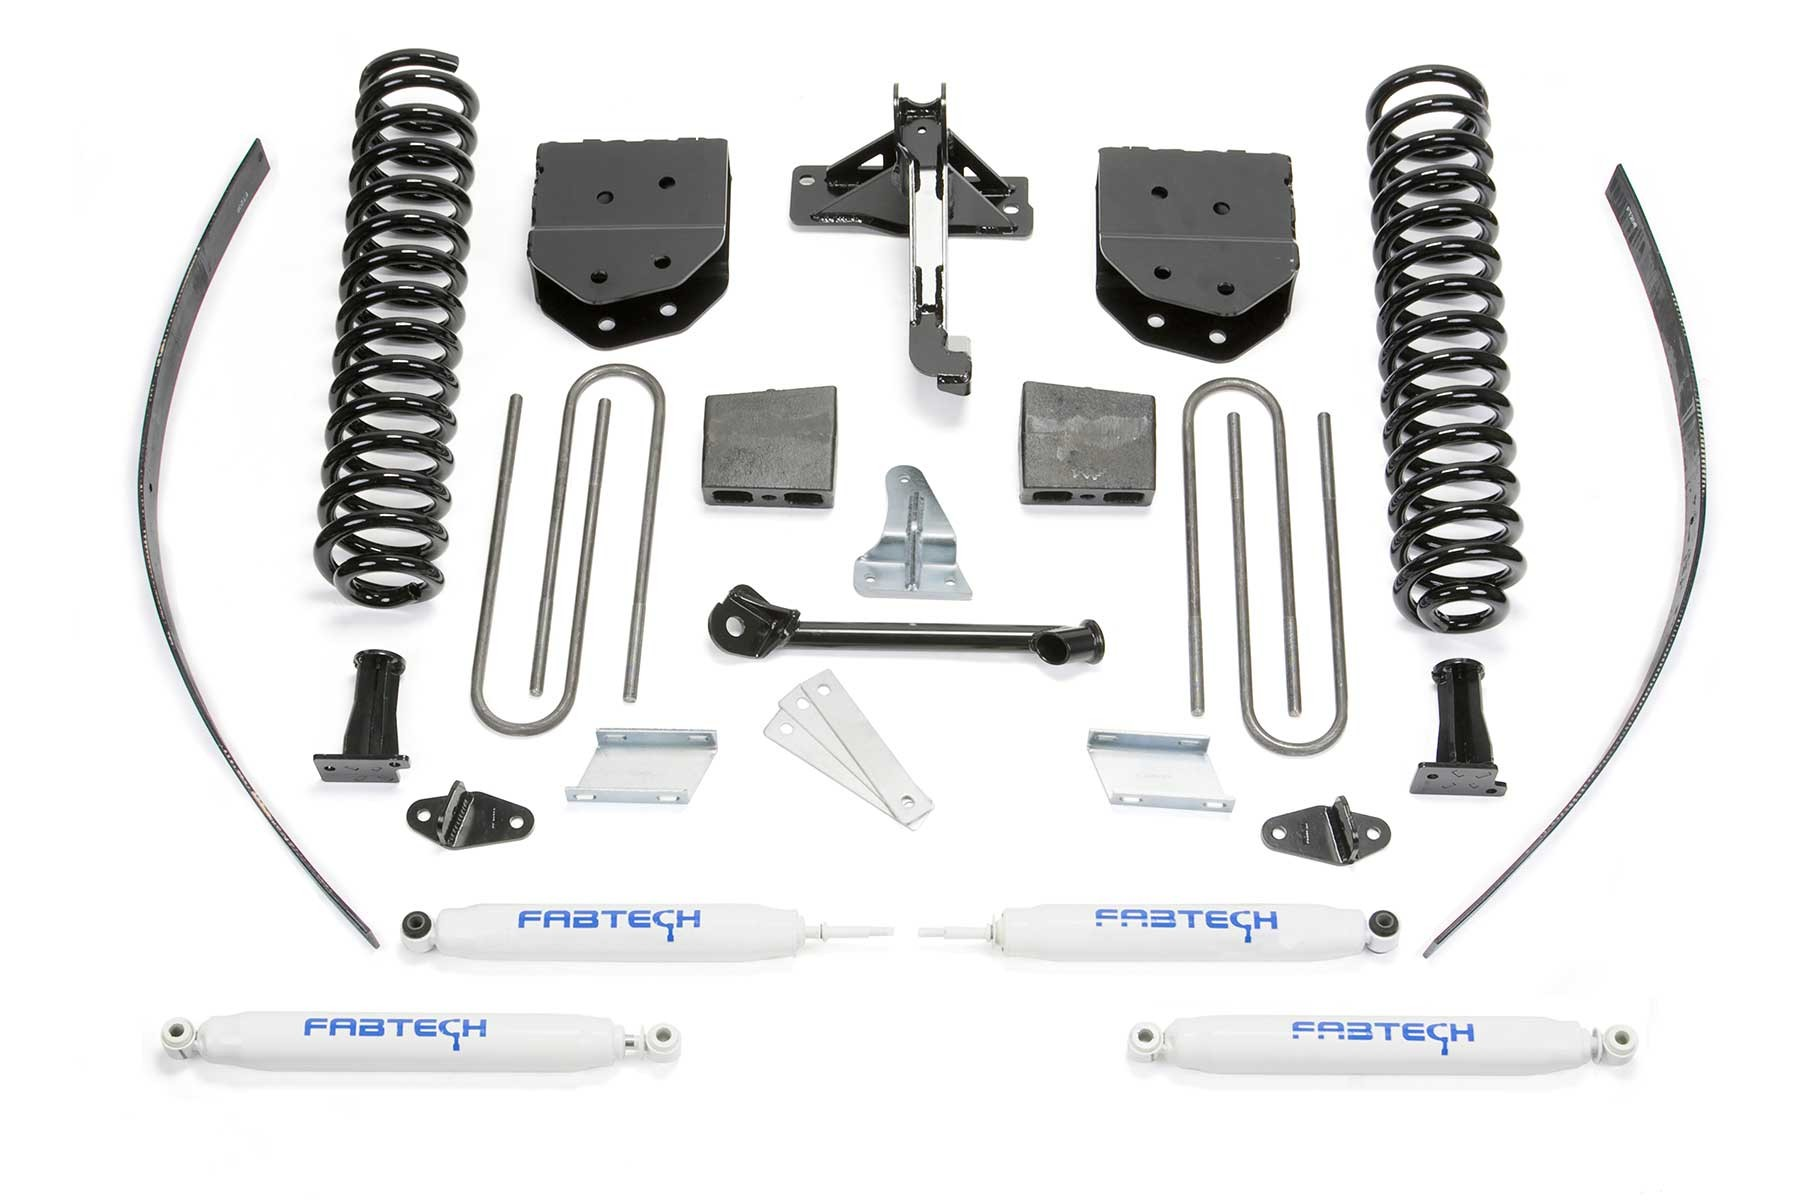 FABTECH 2008-16 Ford F250 4WD- 8″ BASIC SYSTEM SHOCKS- w/Factory Overload- Add a Leaf & Block